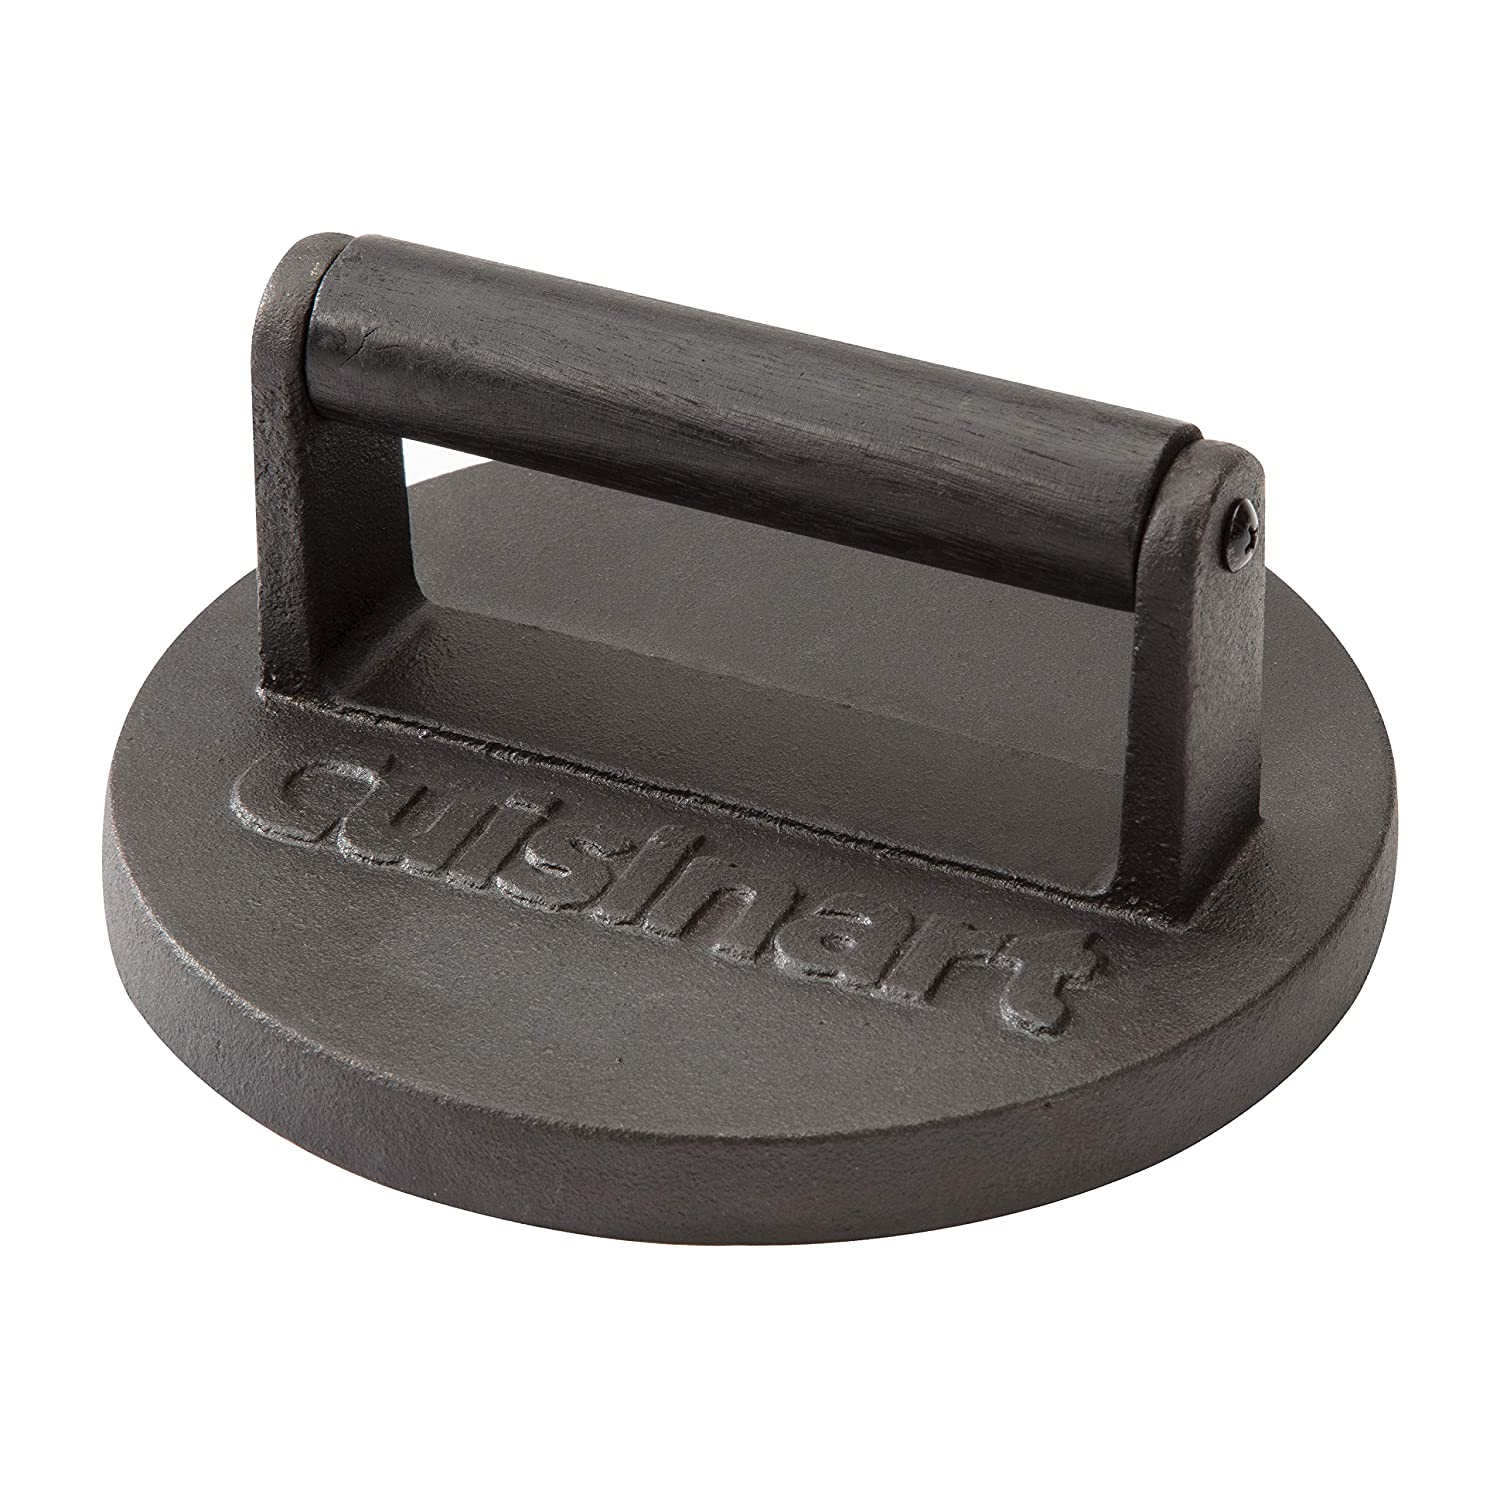 Cuisinart CISB-111 Smashed Burger Press, Cast Iron